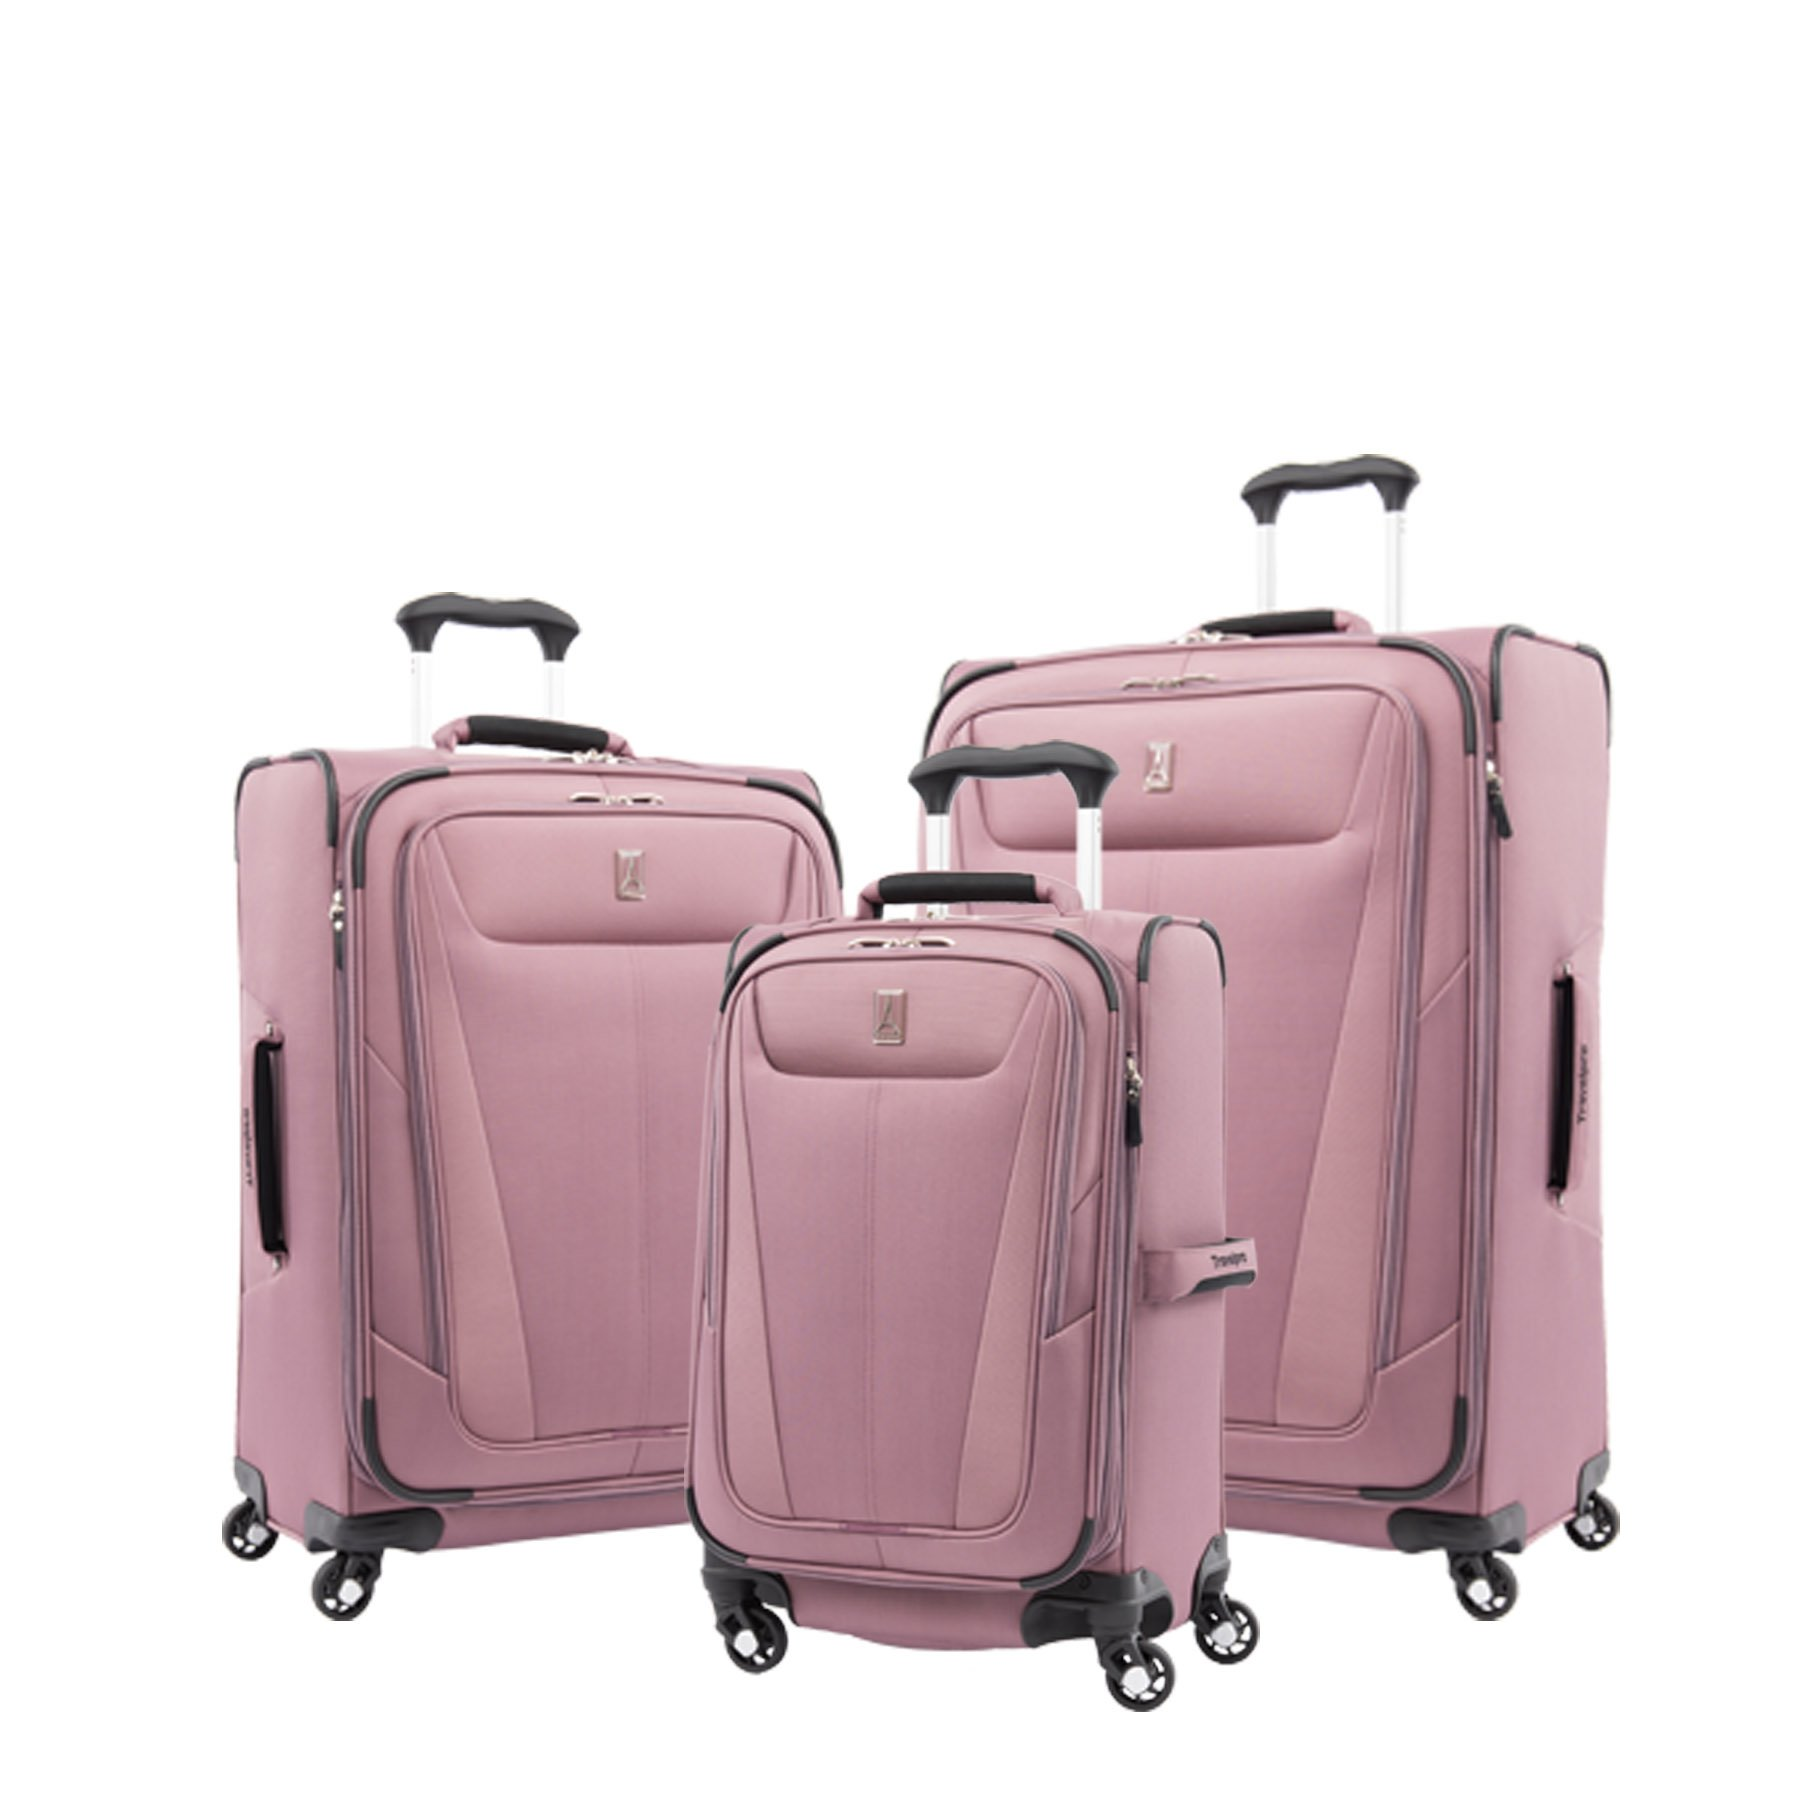 Travelpro Luggage Maxlite 5 | 3-PC Set | 21'' Carry-On, 25'' & 29'' Exp. Spinners (Dusty Rose)